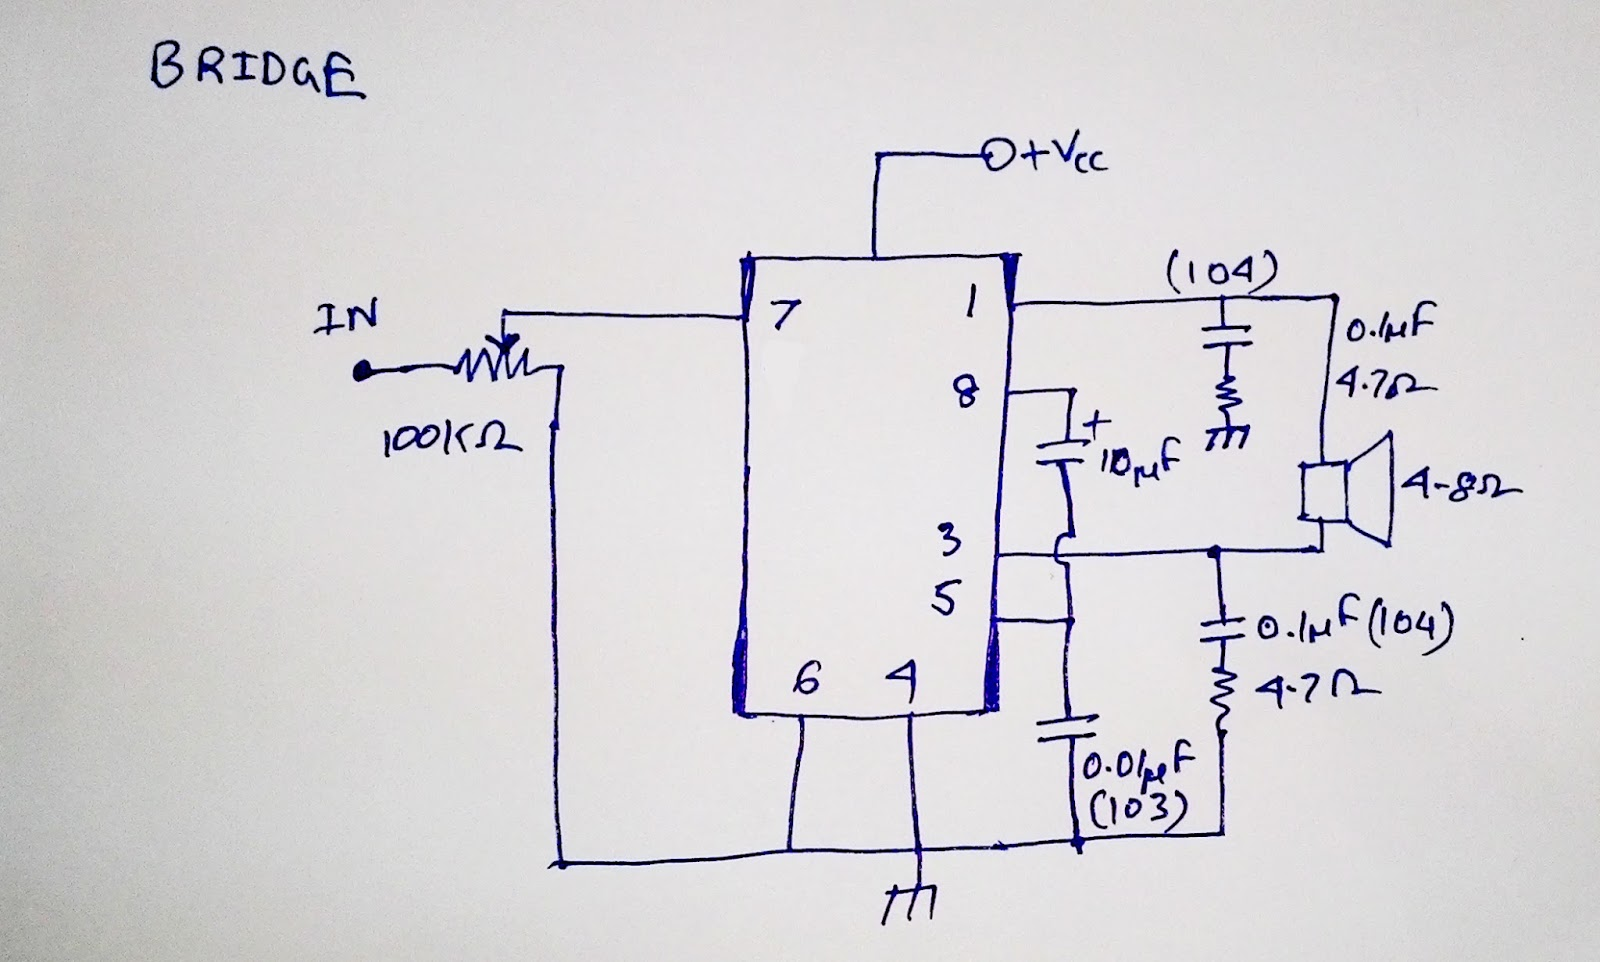 bridging 4 channel amp diagram bmw e30 fuse box scavenger 39s blog headphone amplifier with tda2822